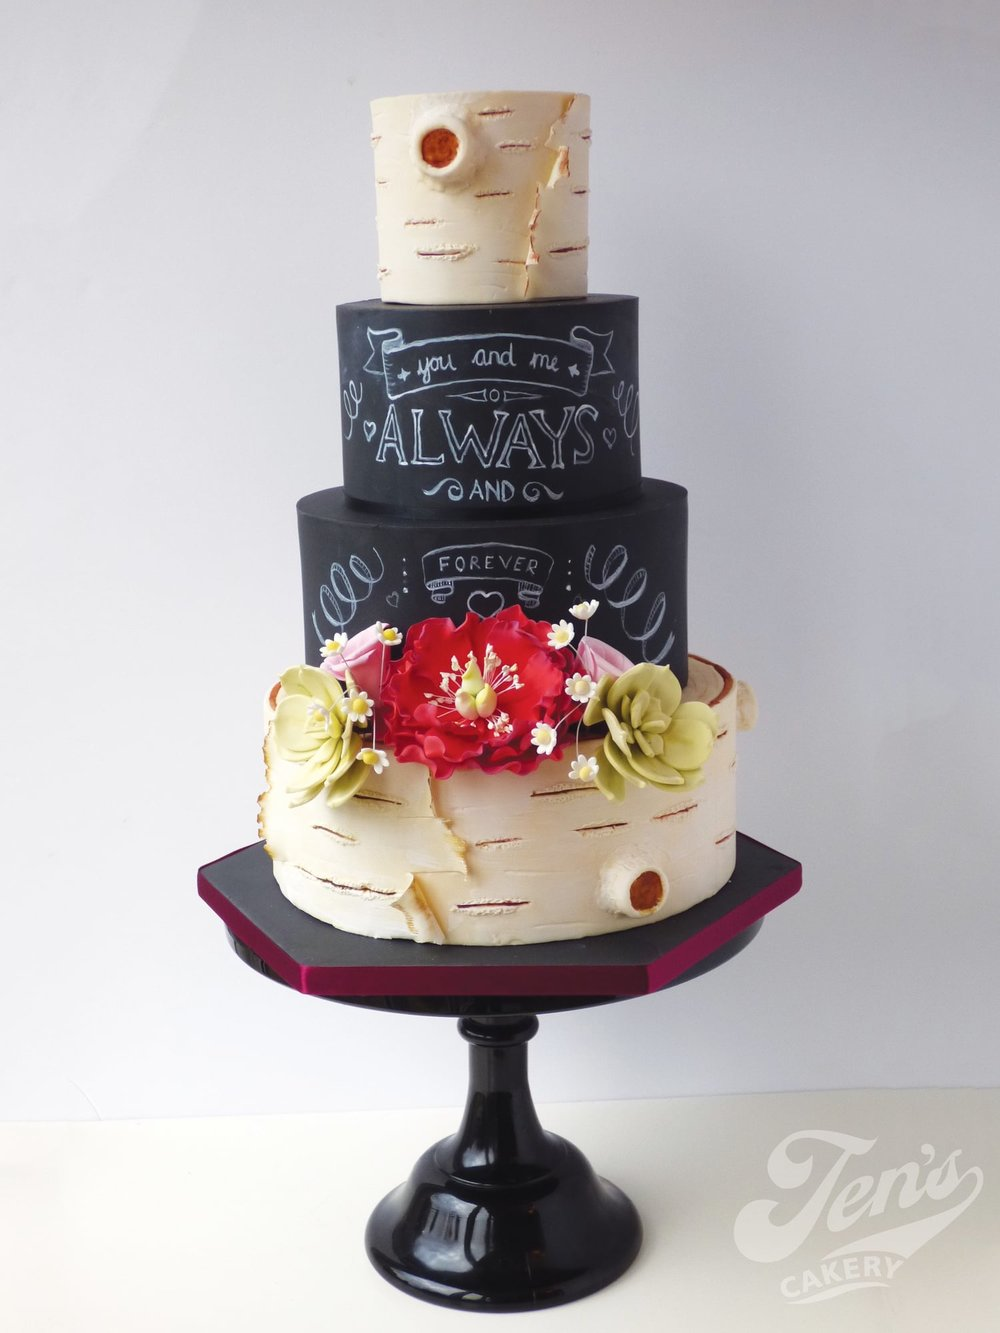 Wedding cake with silver birch tree bark and slate chalkboard art.